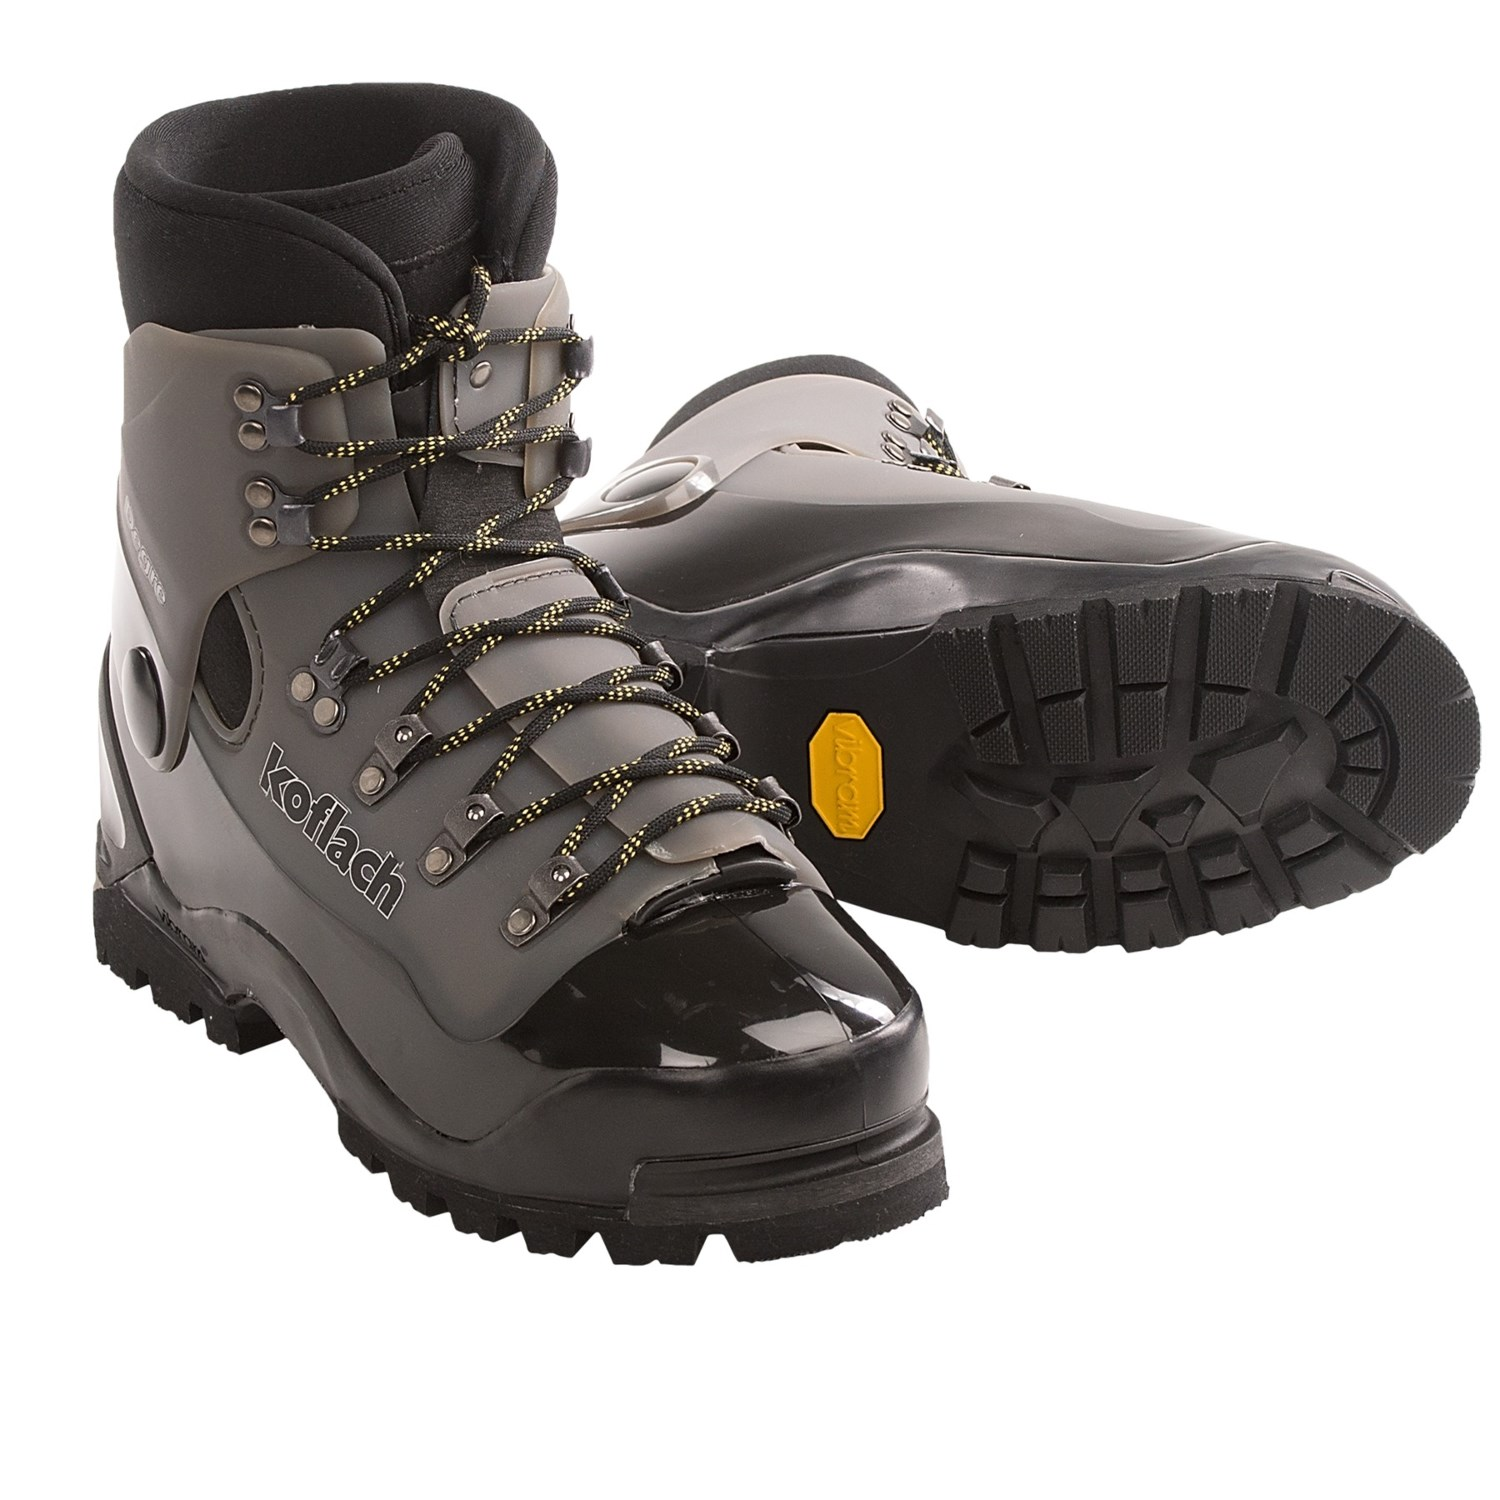 Koflach Degre Mountaineering Boots (For Men and Women